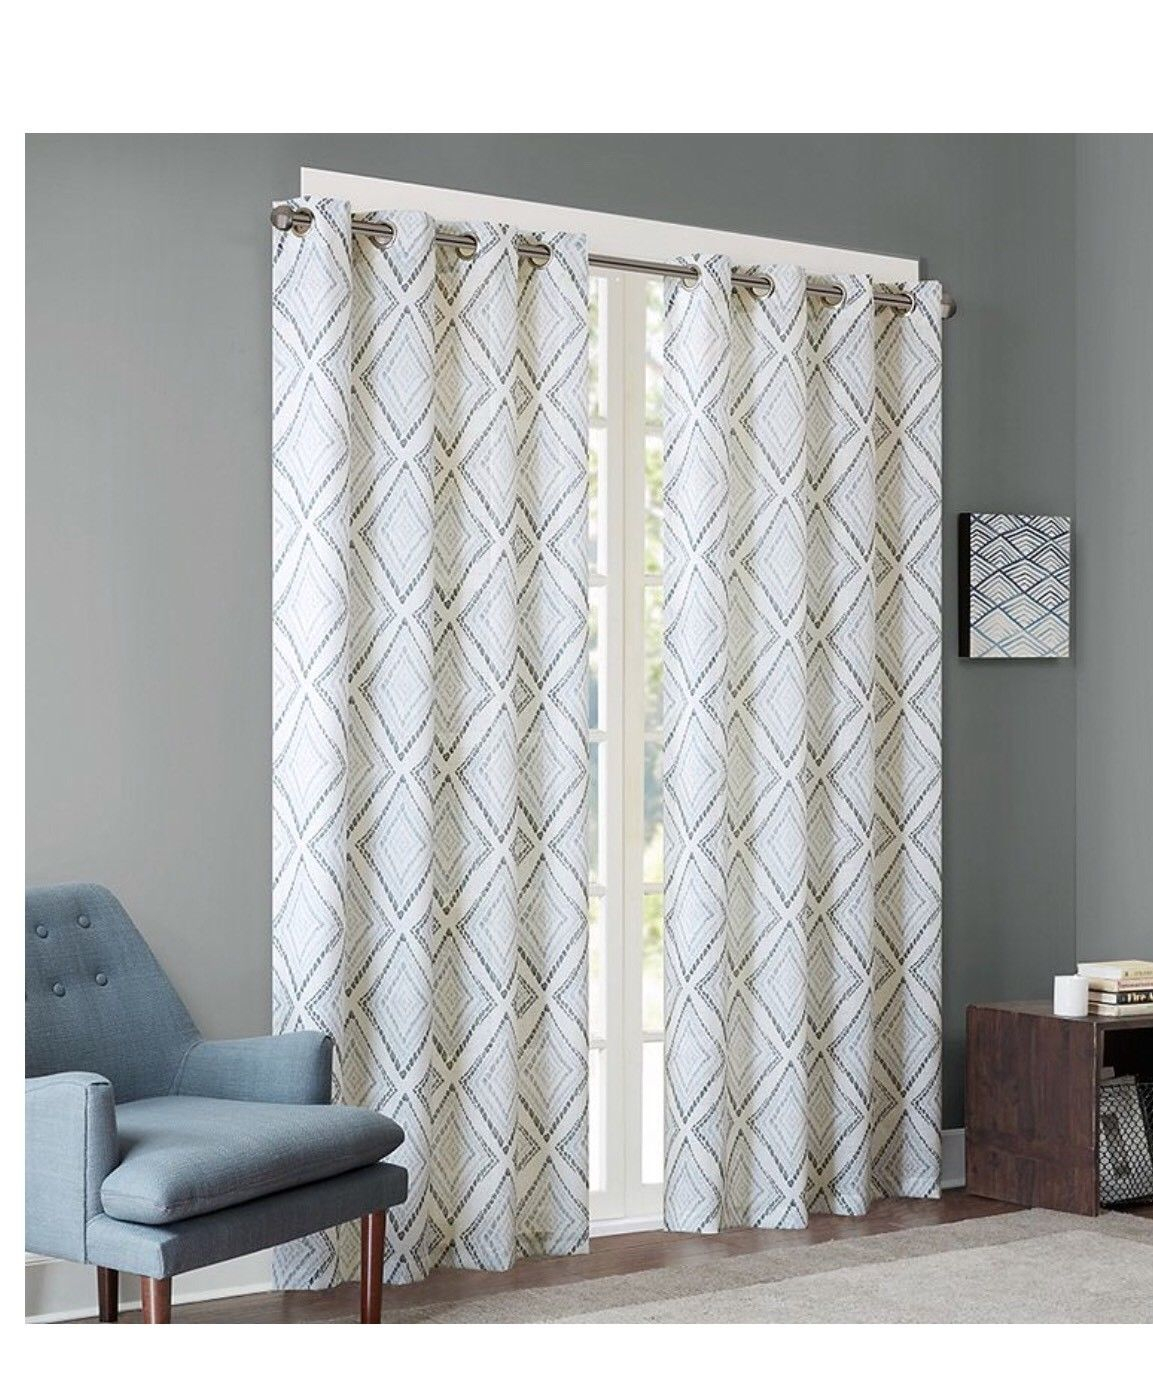 "Ink+Ivy Bas Printed Etched Diamond Window Set Of 2 Panels 50X95"" Grey #ii40 720 Intended For Ink Ivy Ankara Cotton Printed Single Curtain Panels (View 11 of 20)"